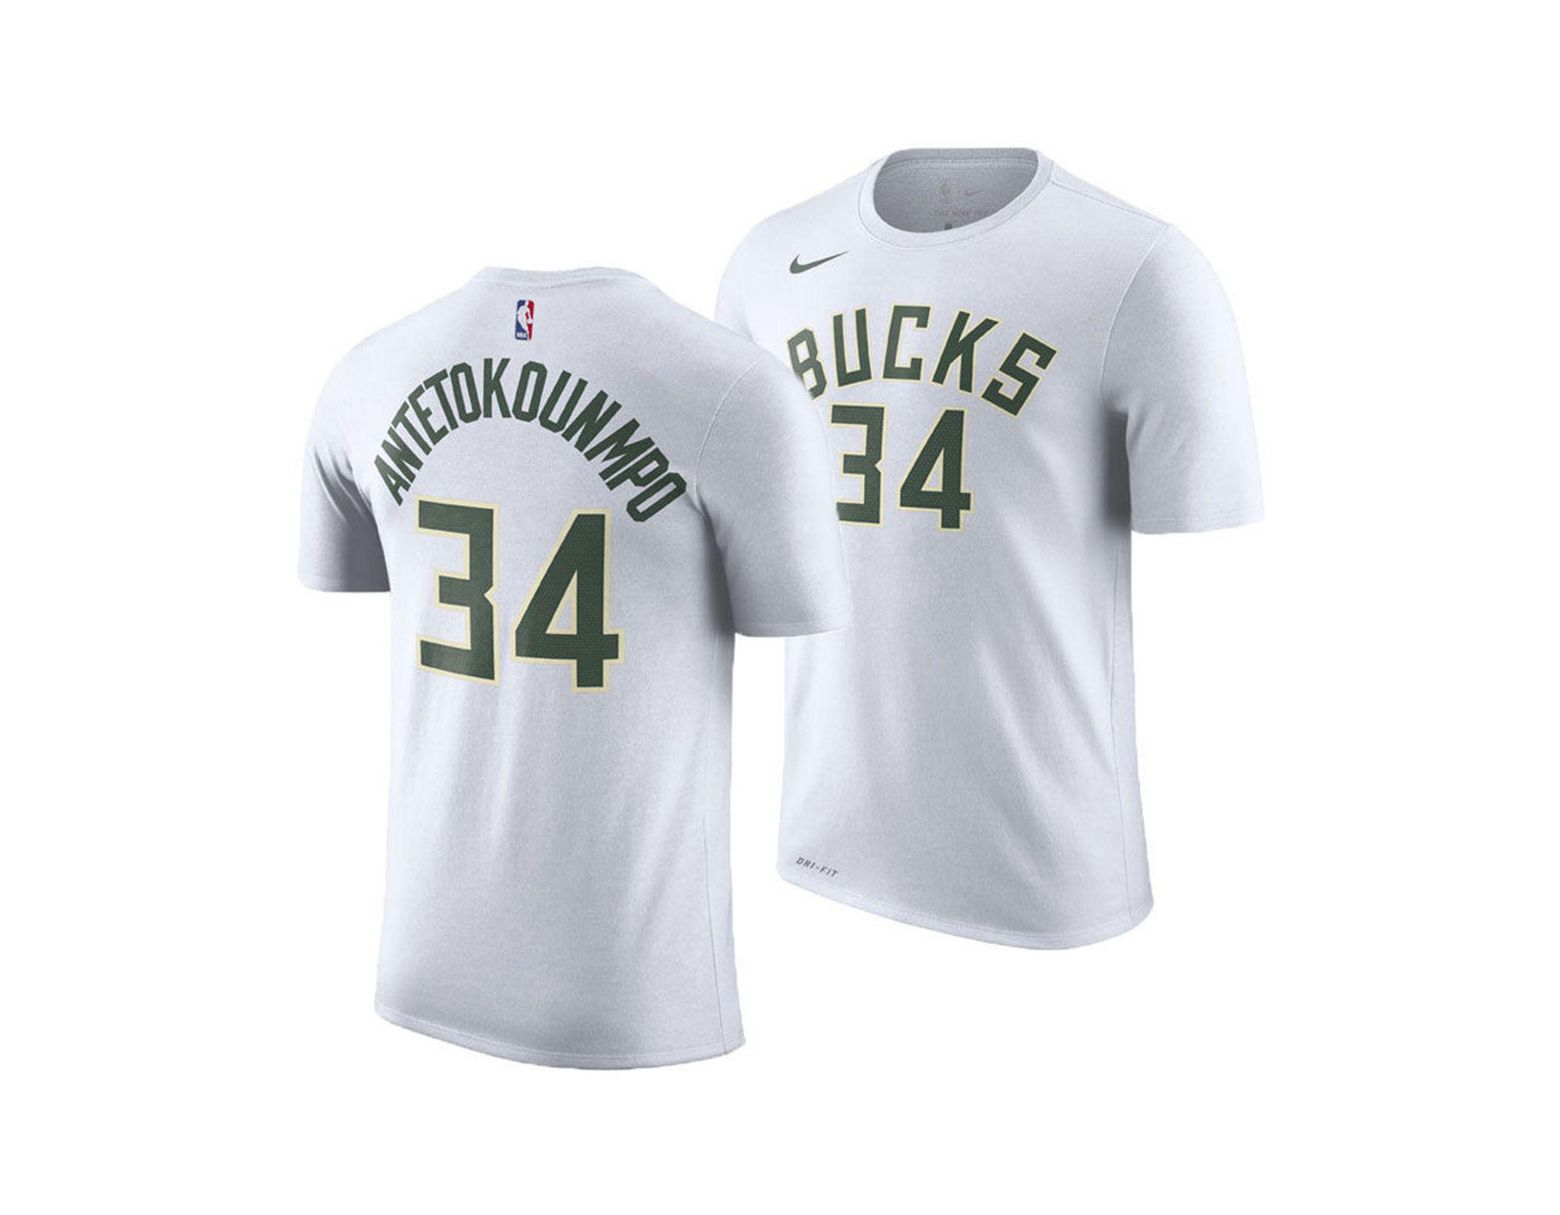 ac24e51963b Nike Giannis Antetokounmpo Nba Player Name & Number T-shirt in White for  Men - Save 26% - Lyst